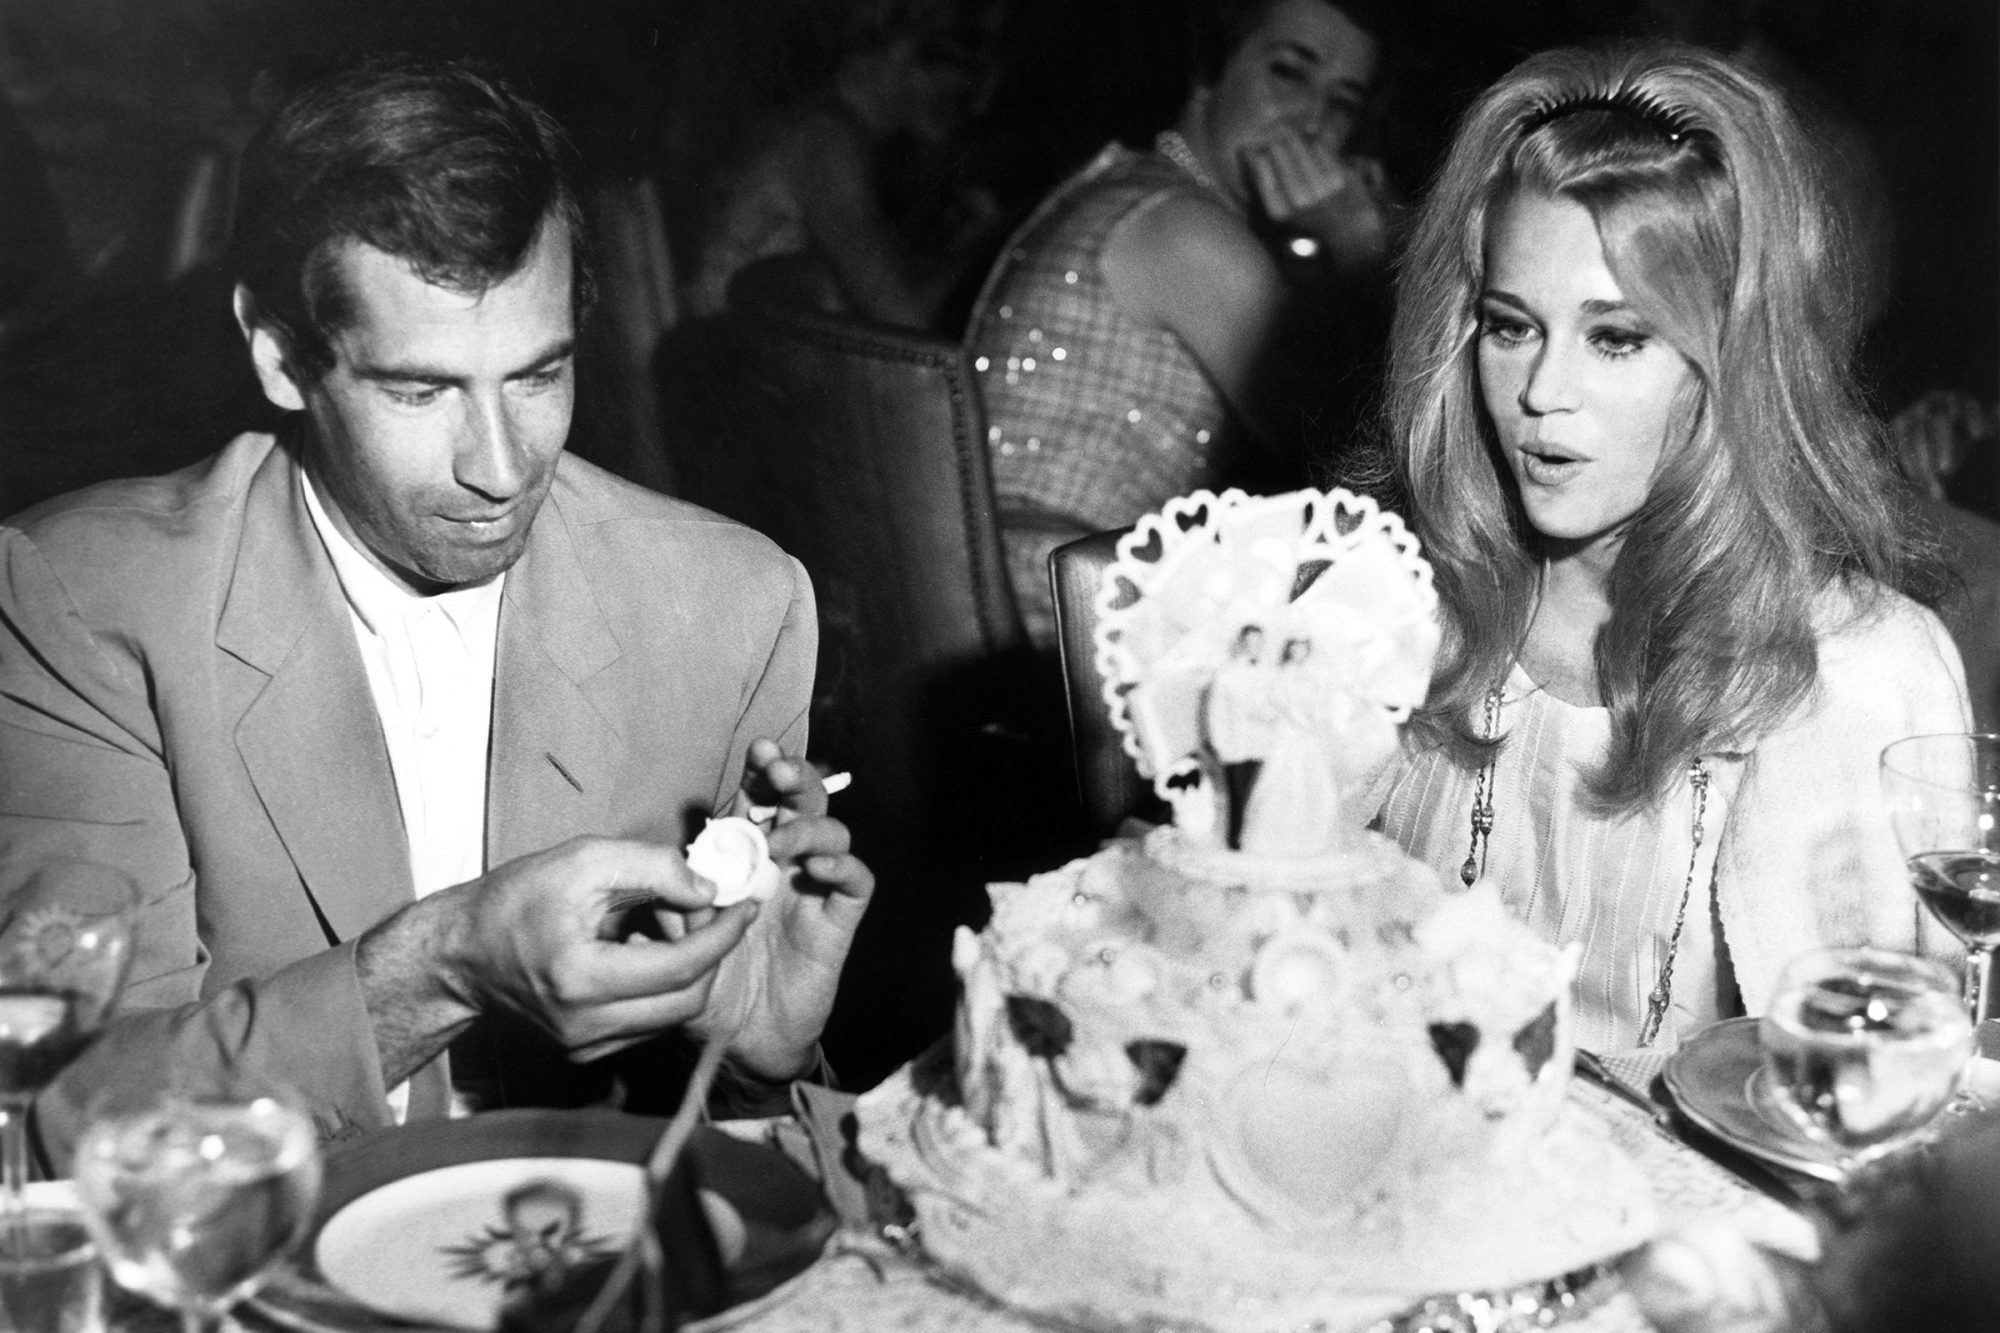 Roger Vadim And Jane Fonda The Evening Of Their Marriage, 1965